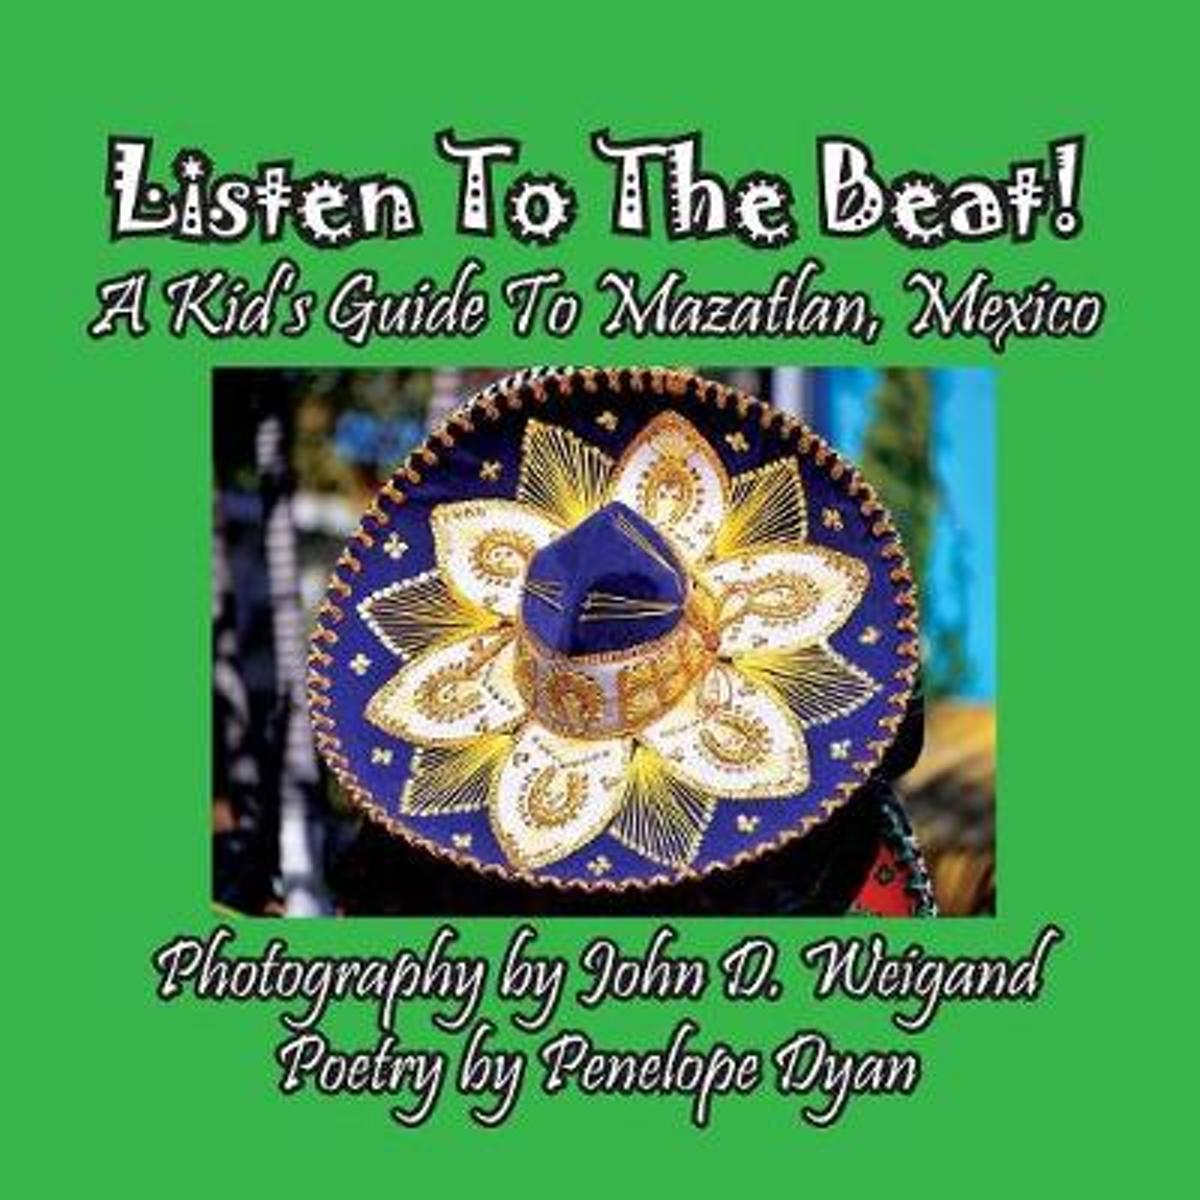 Listen to the Beat! a Kid's Guide to Mazatlan, Mexico